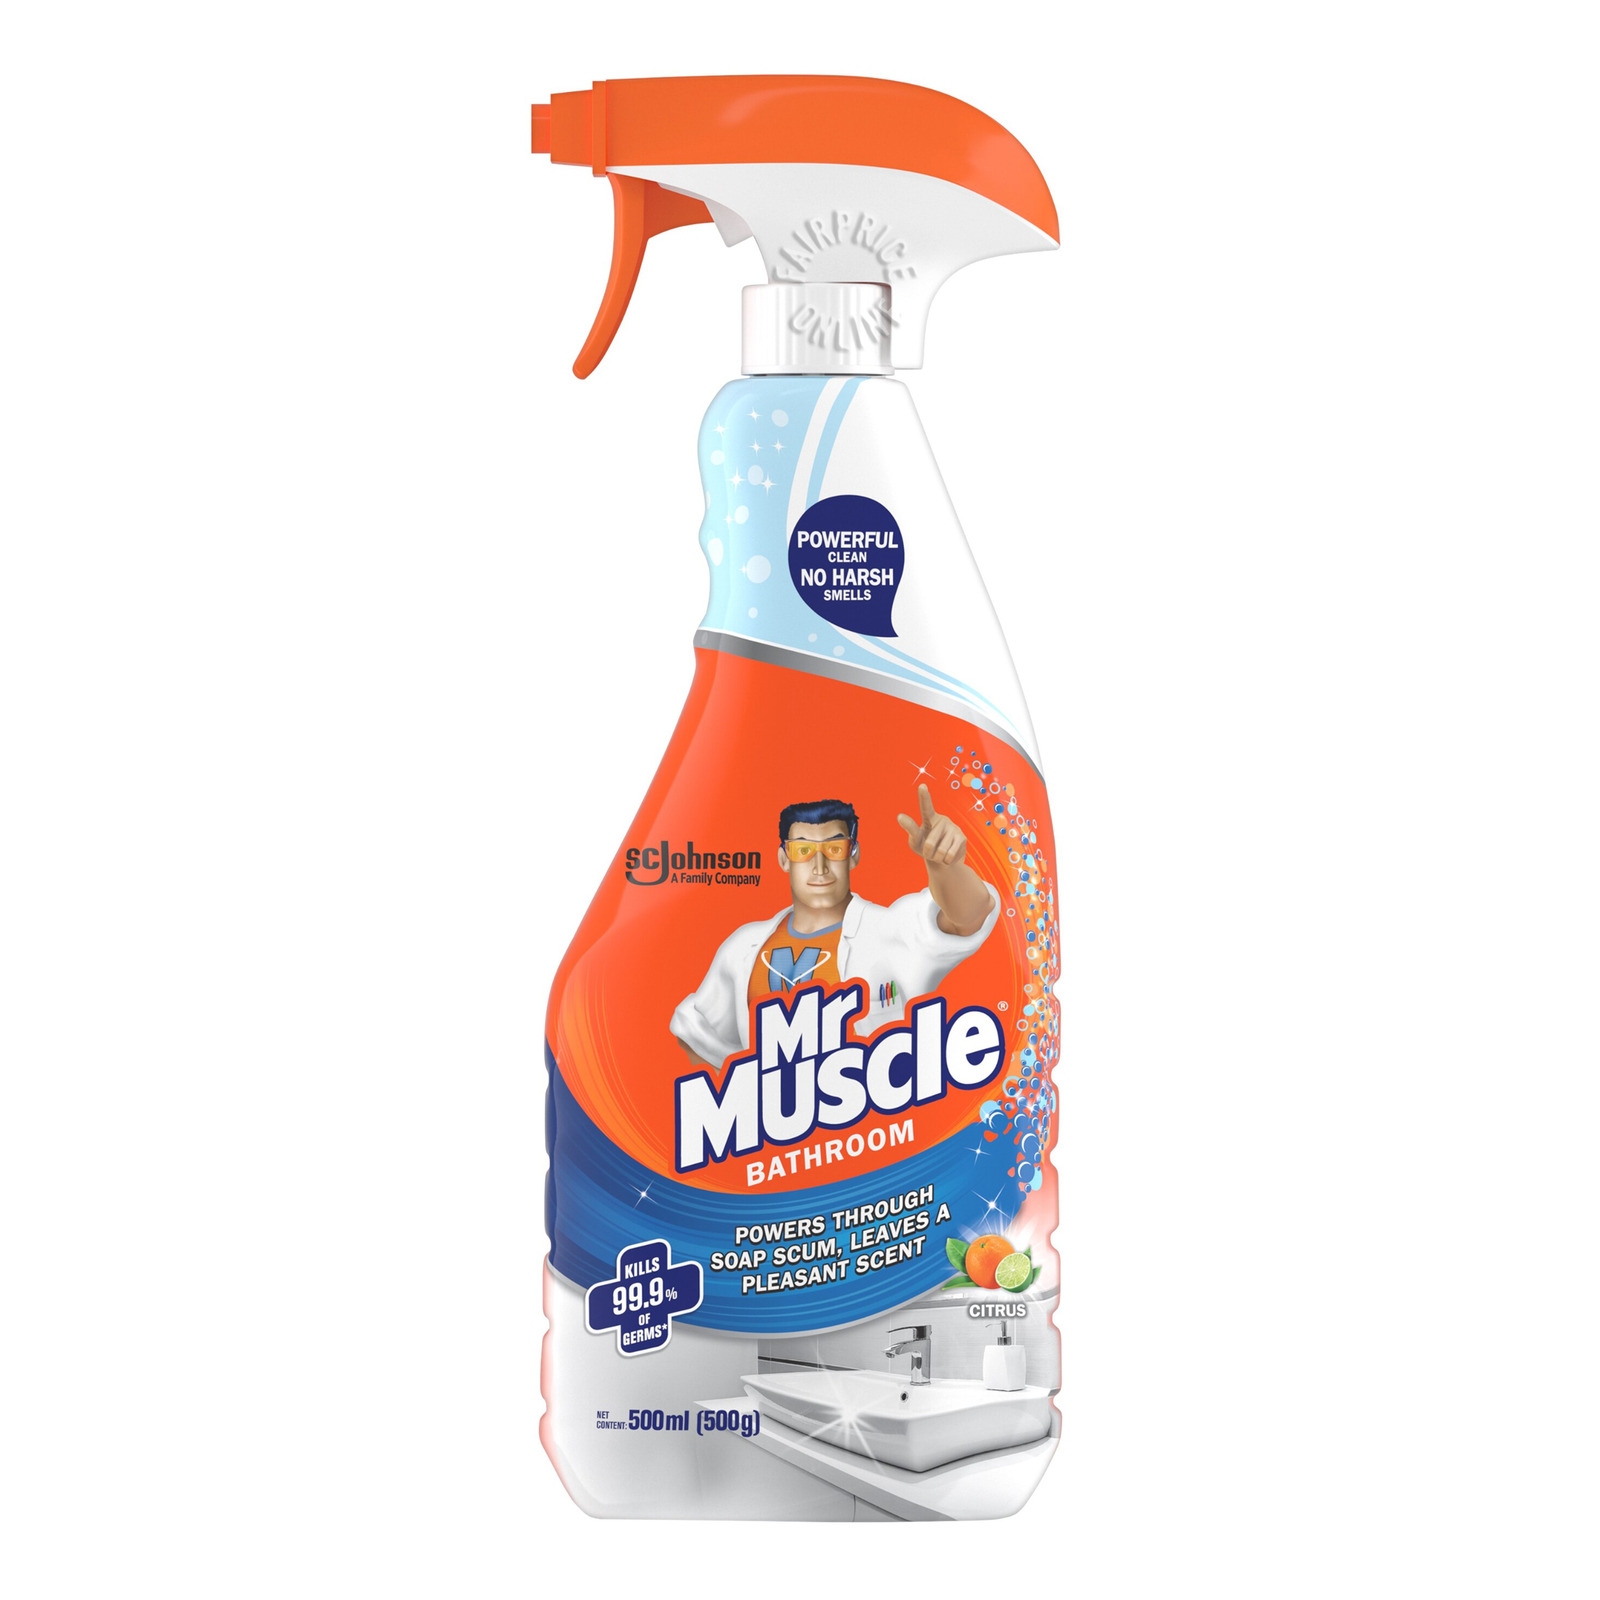 Mr Muscle 5 in 1 Total Bath